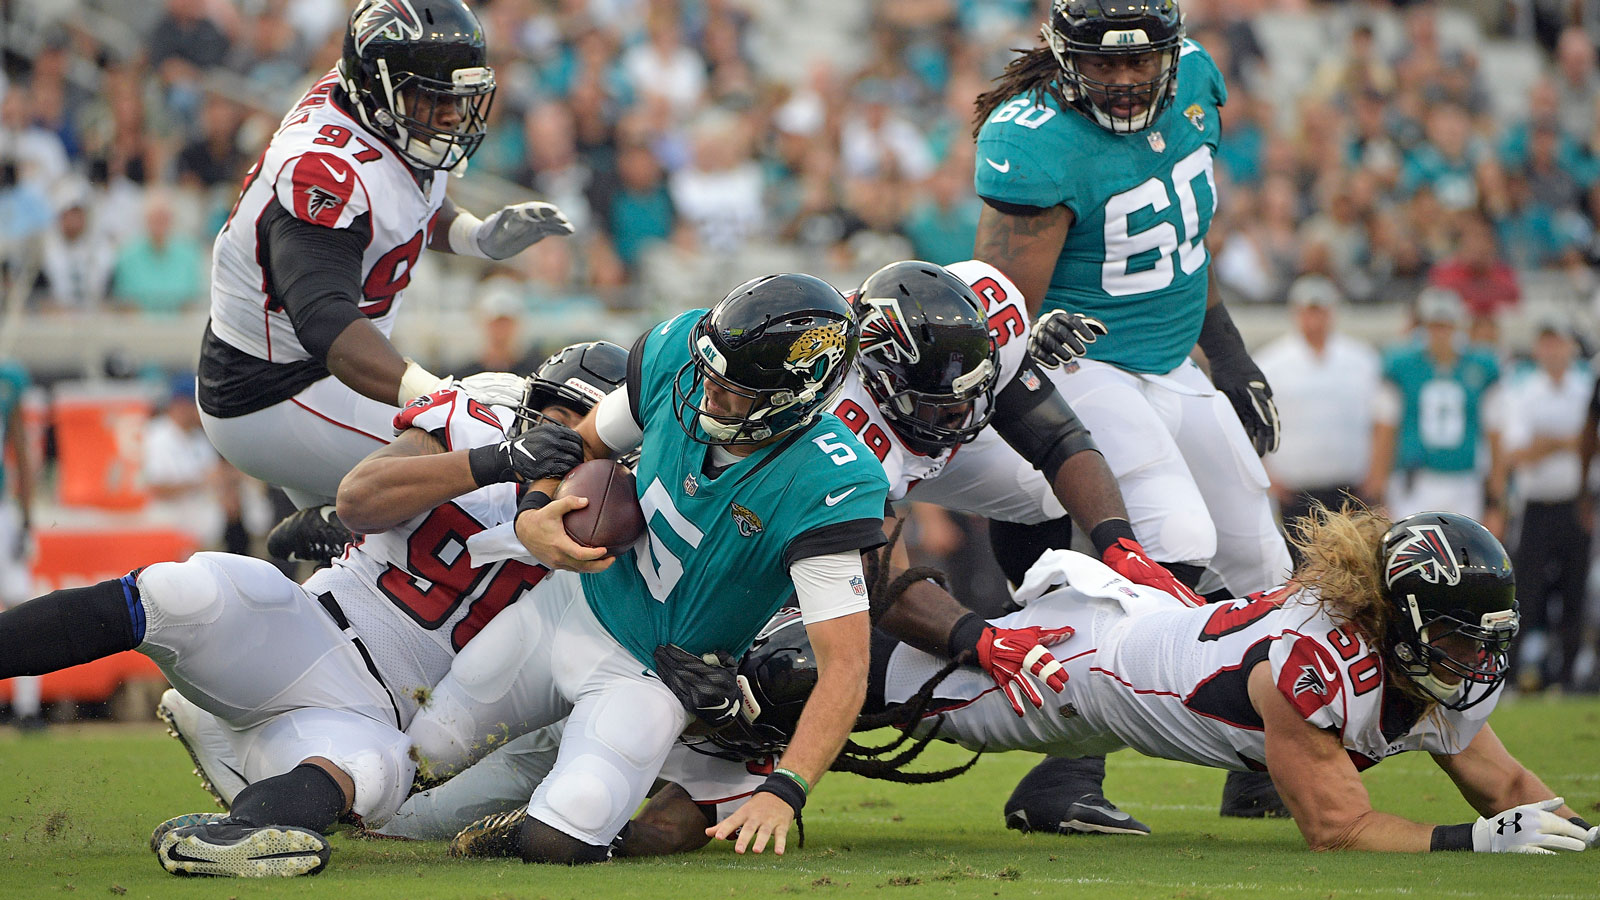 NFL preseason: Jaguars' win over Falcons overshadowed by knee injury to Marqise Lee